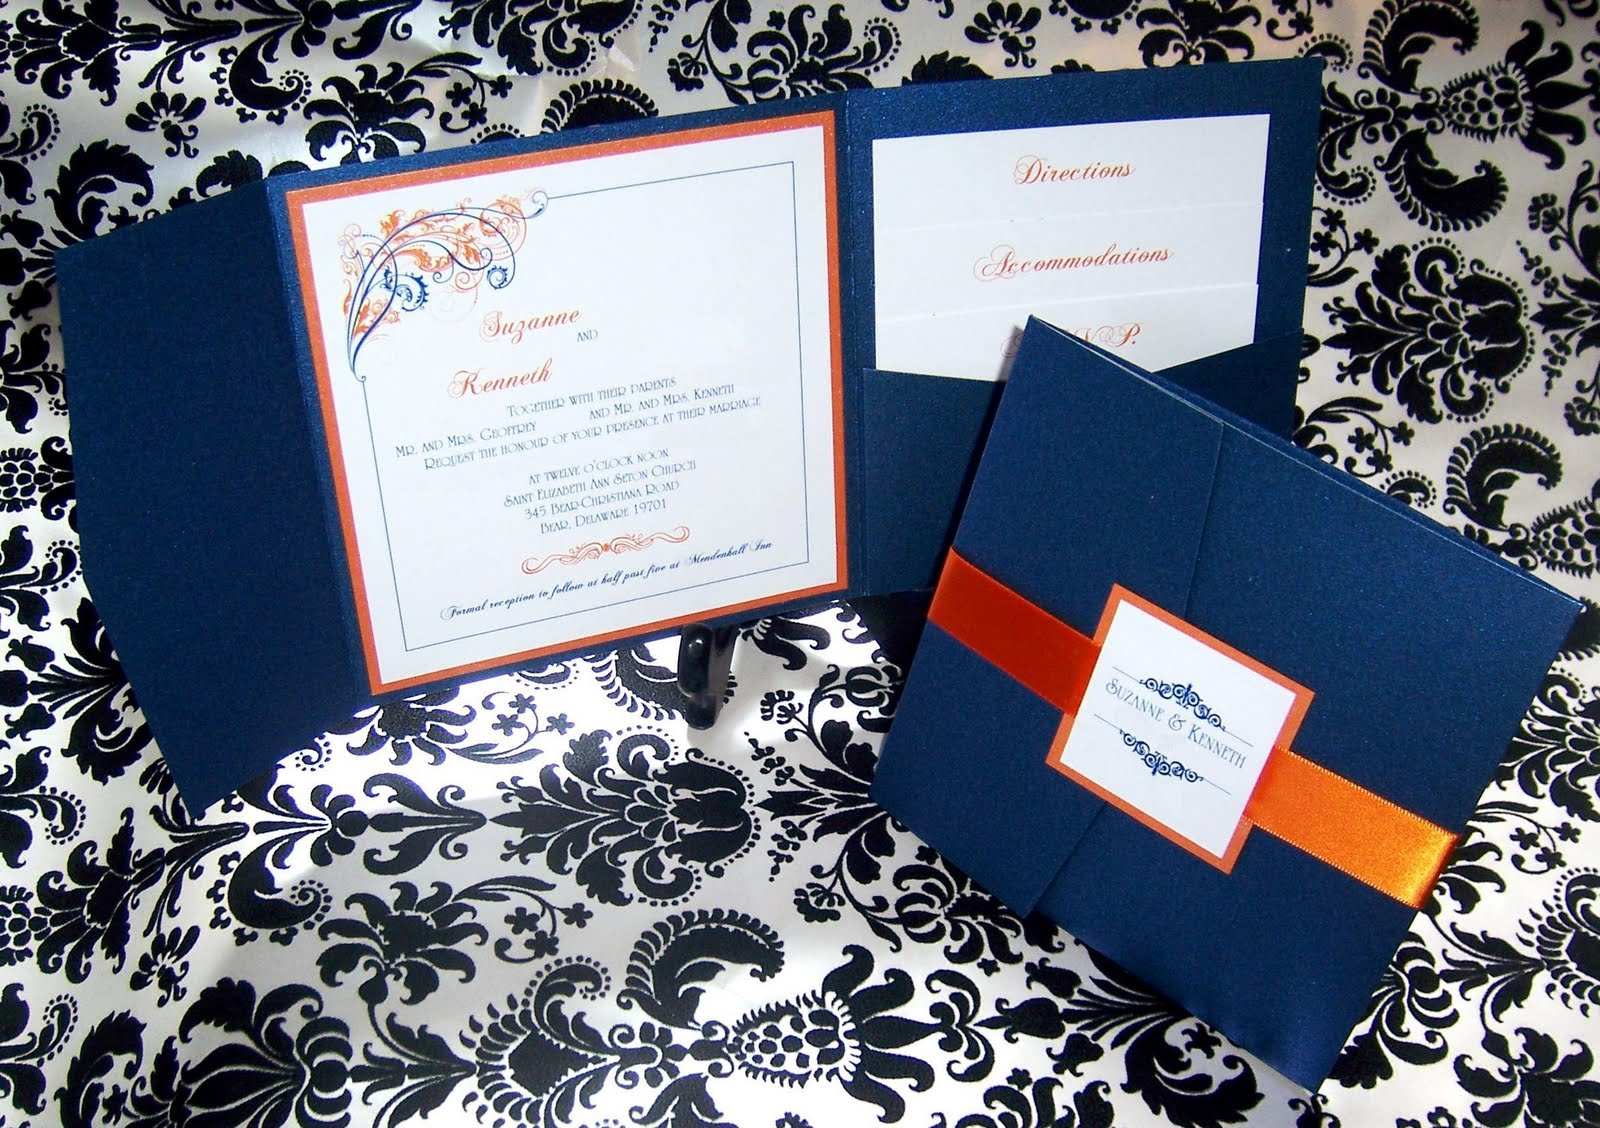 Dark Blue Wedding Invitations: Proud To Plan: Suzanne And Kenneth's Wedding Invitations